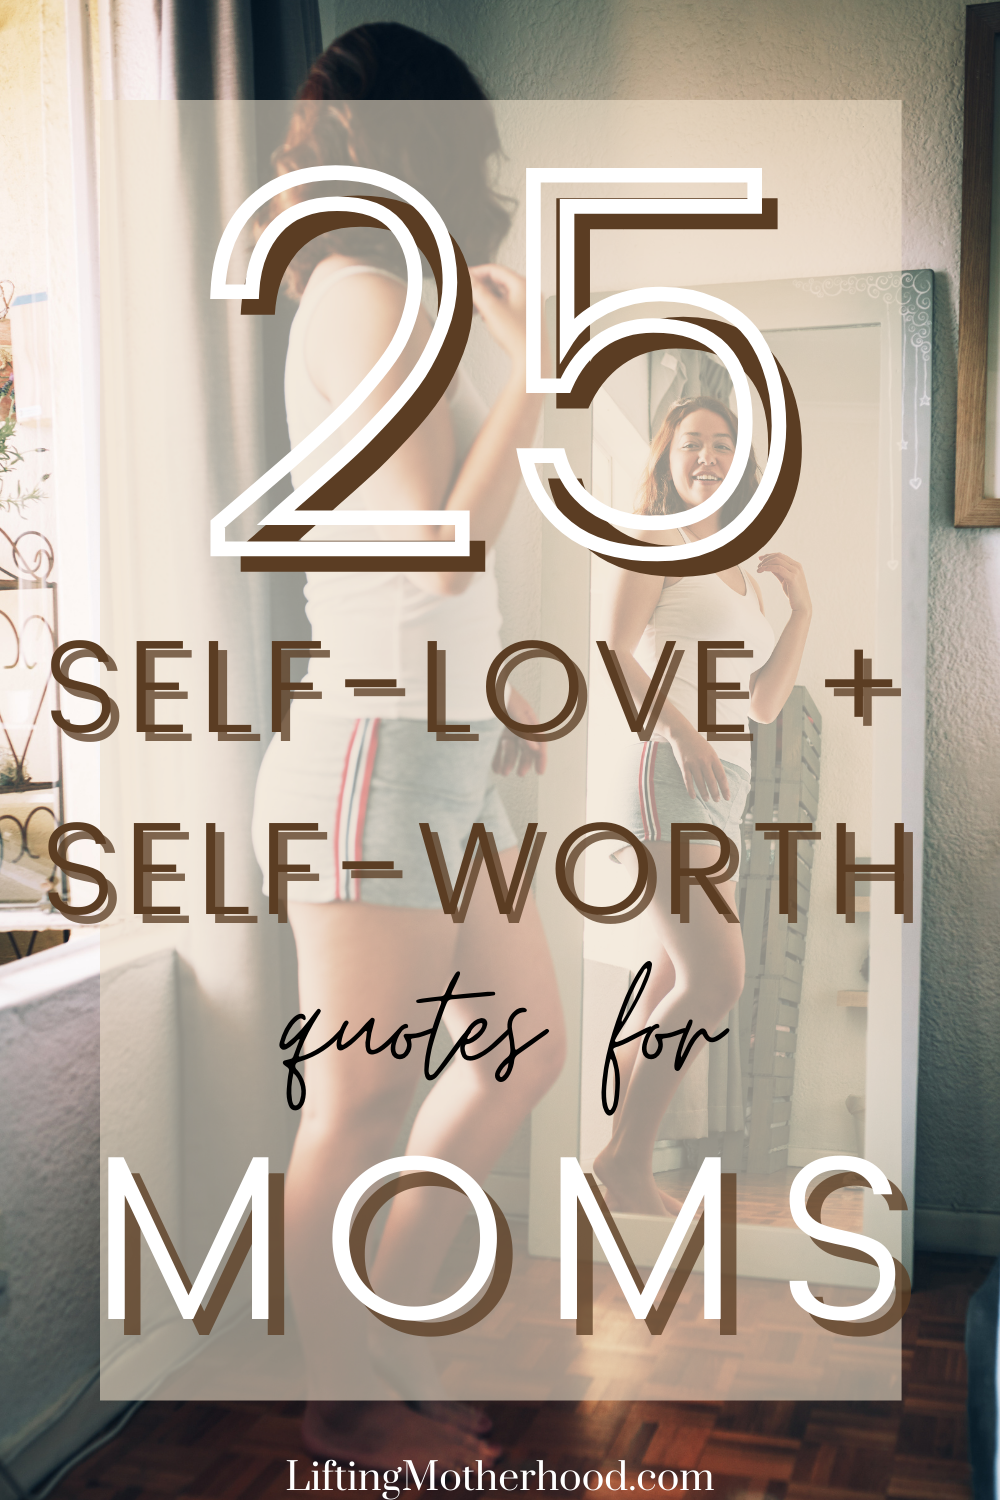 25 Self-Love Motherhood Quotes You'll Want To Read